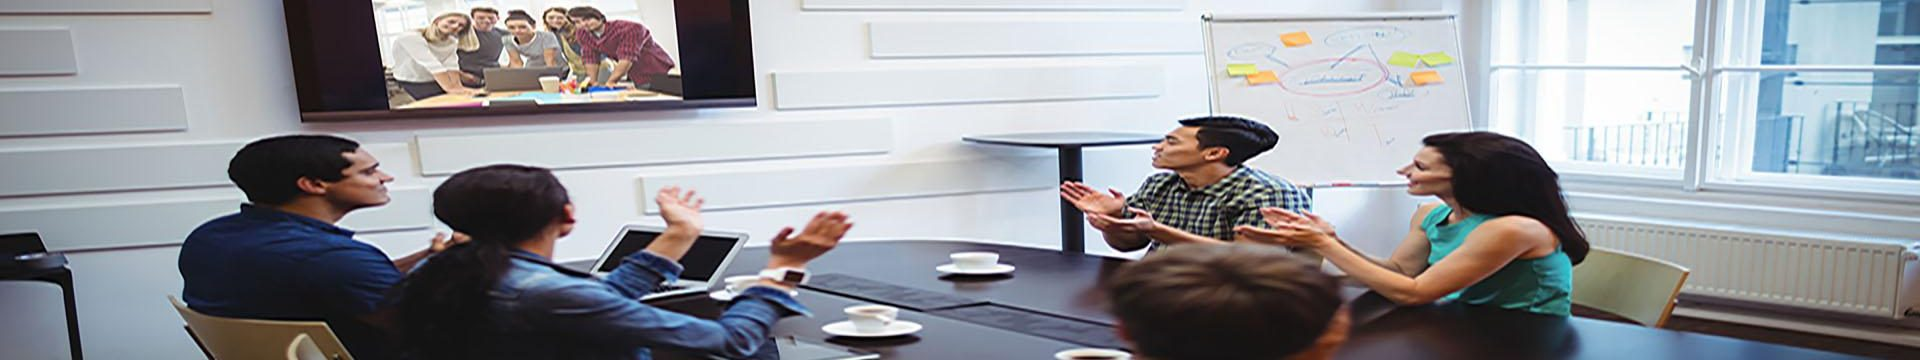 Business executive applauding during a video conference in the conference room